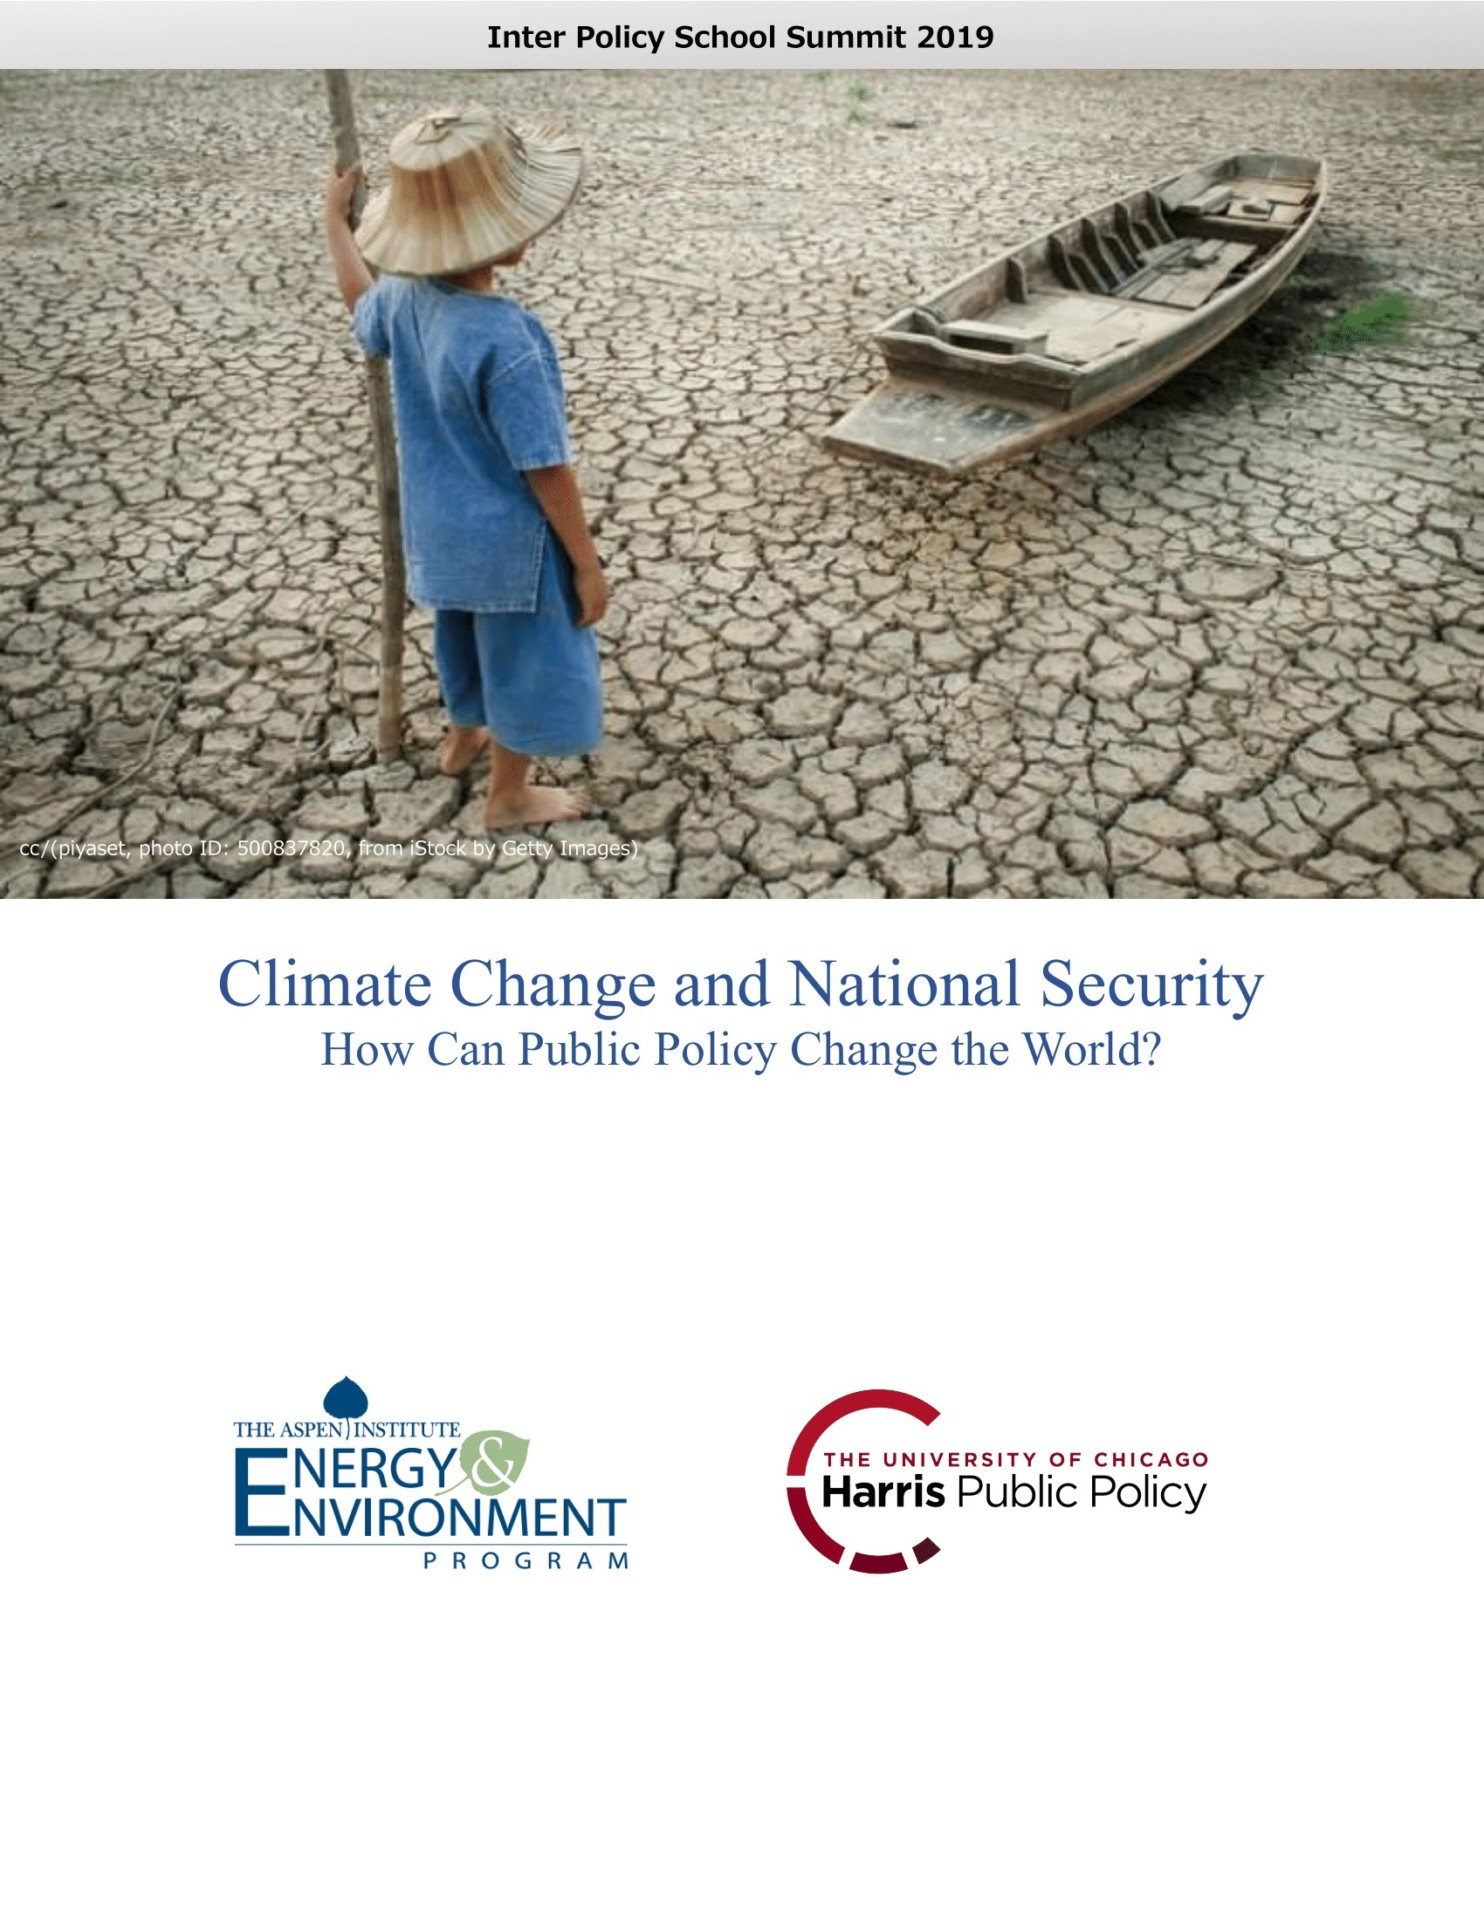 Climate Change and National Security: A Report from the 2019 Inter-Policy School Summit